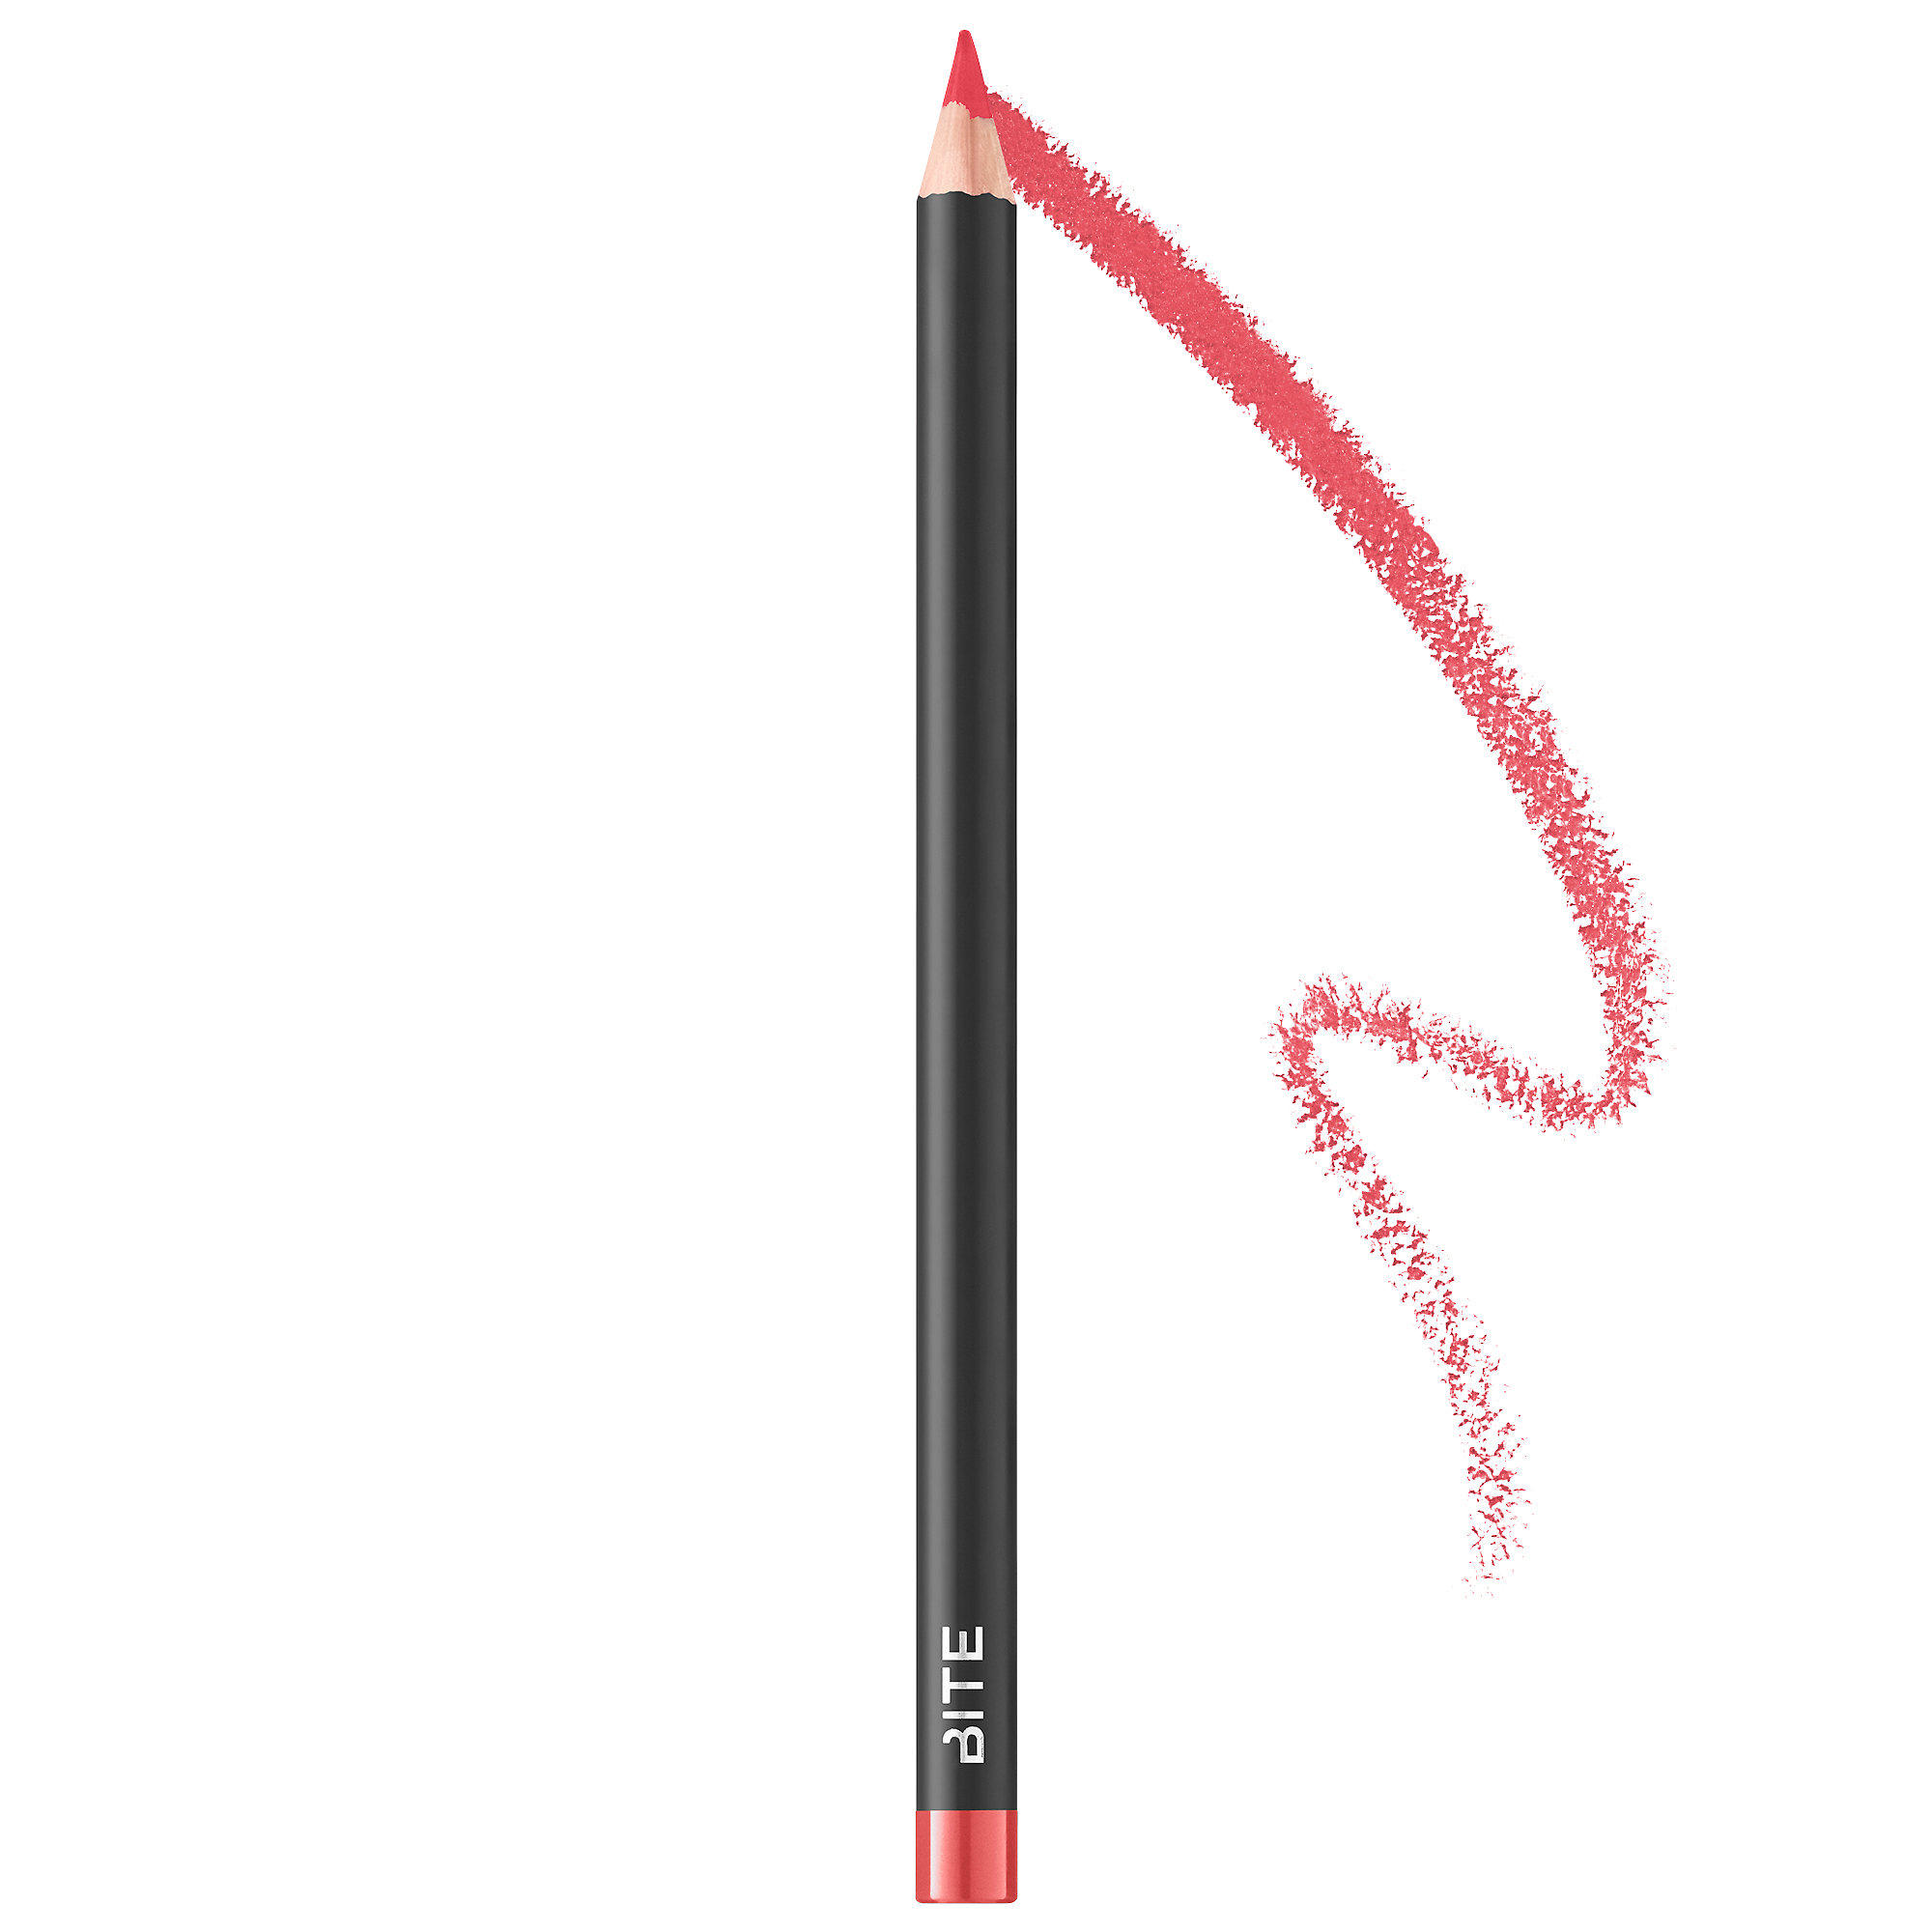 Bite Beauty The Lip Pencil Bright Coral Pink 066